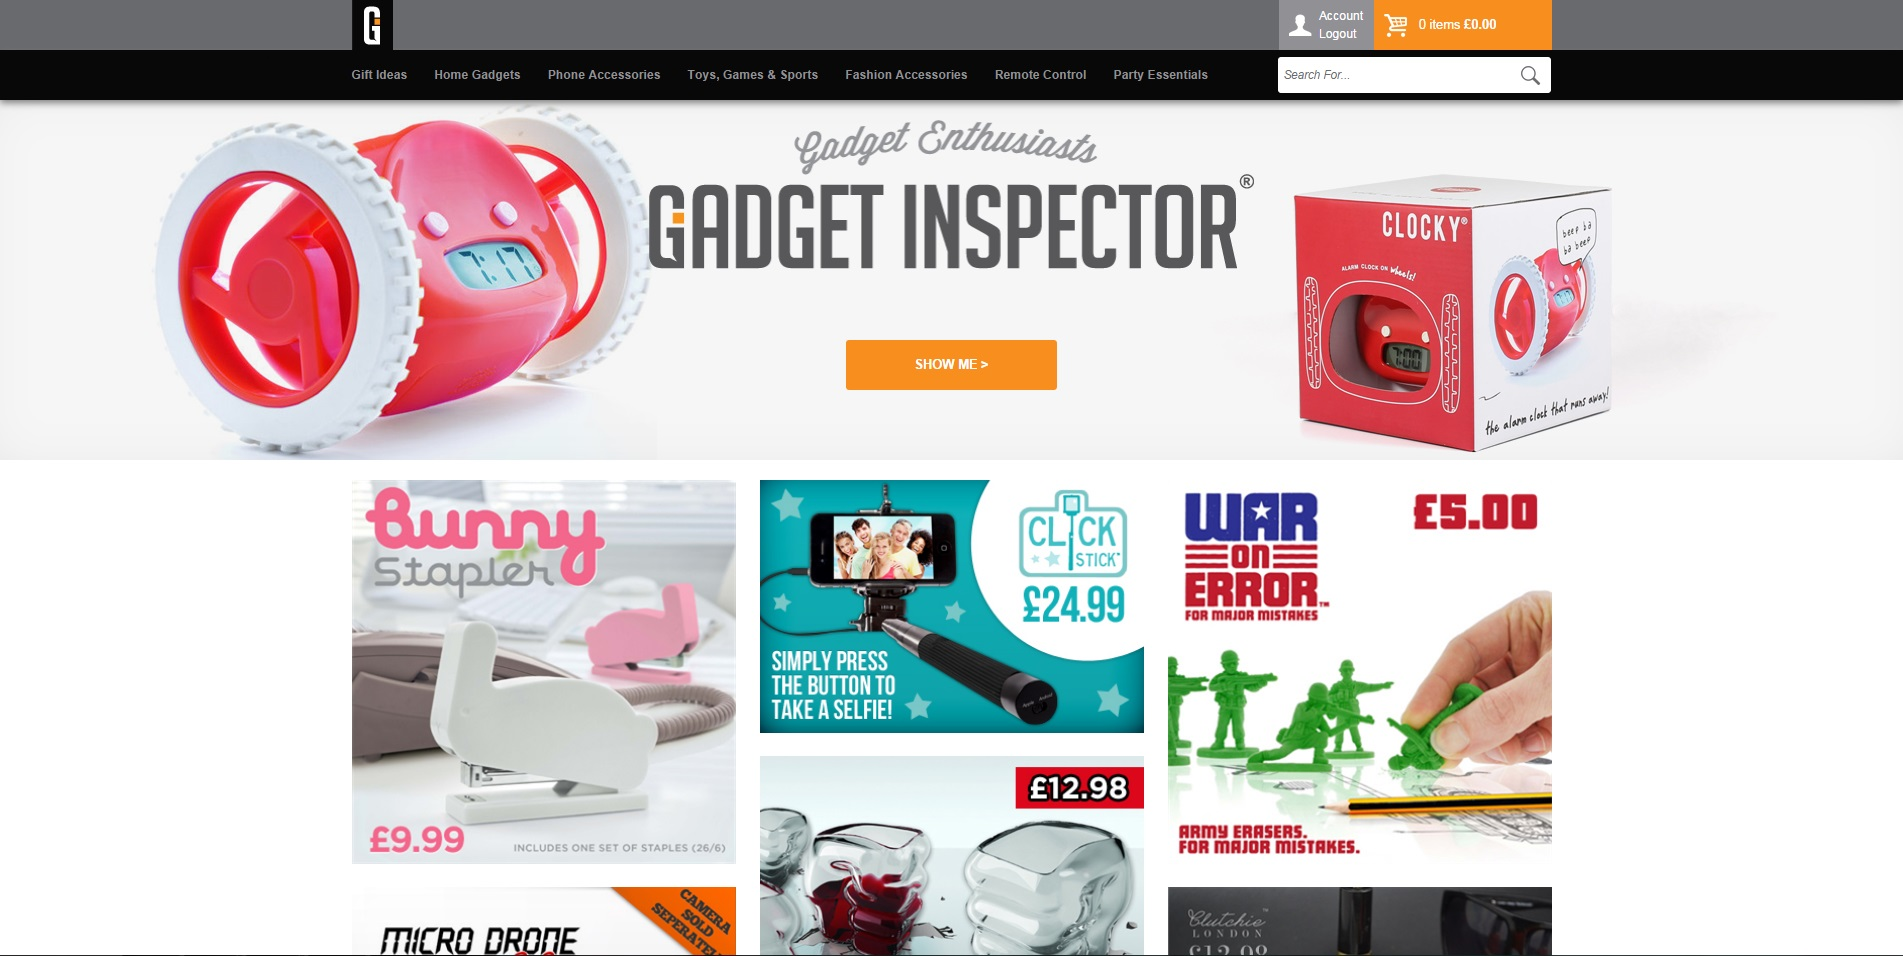 New Gadget Inspector site